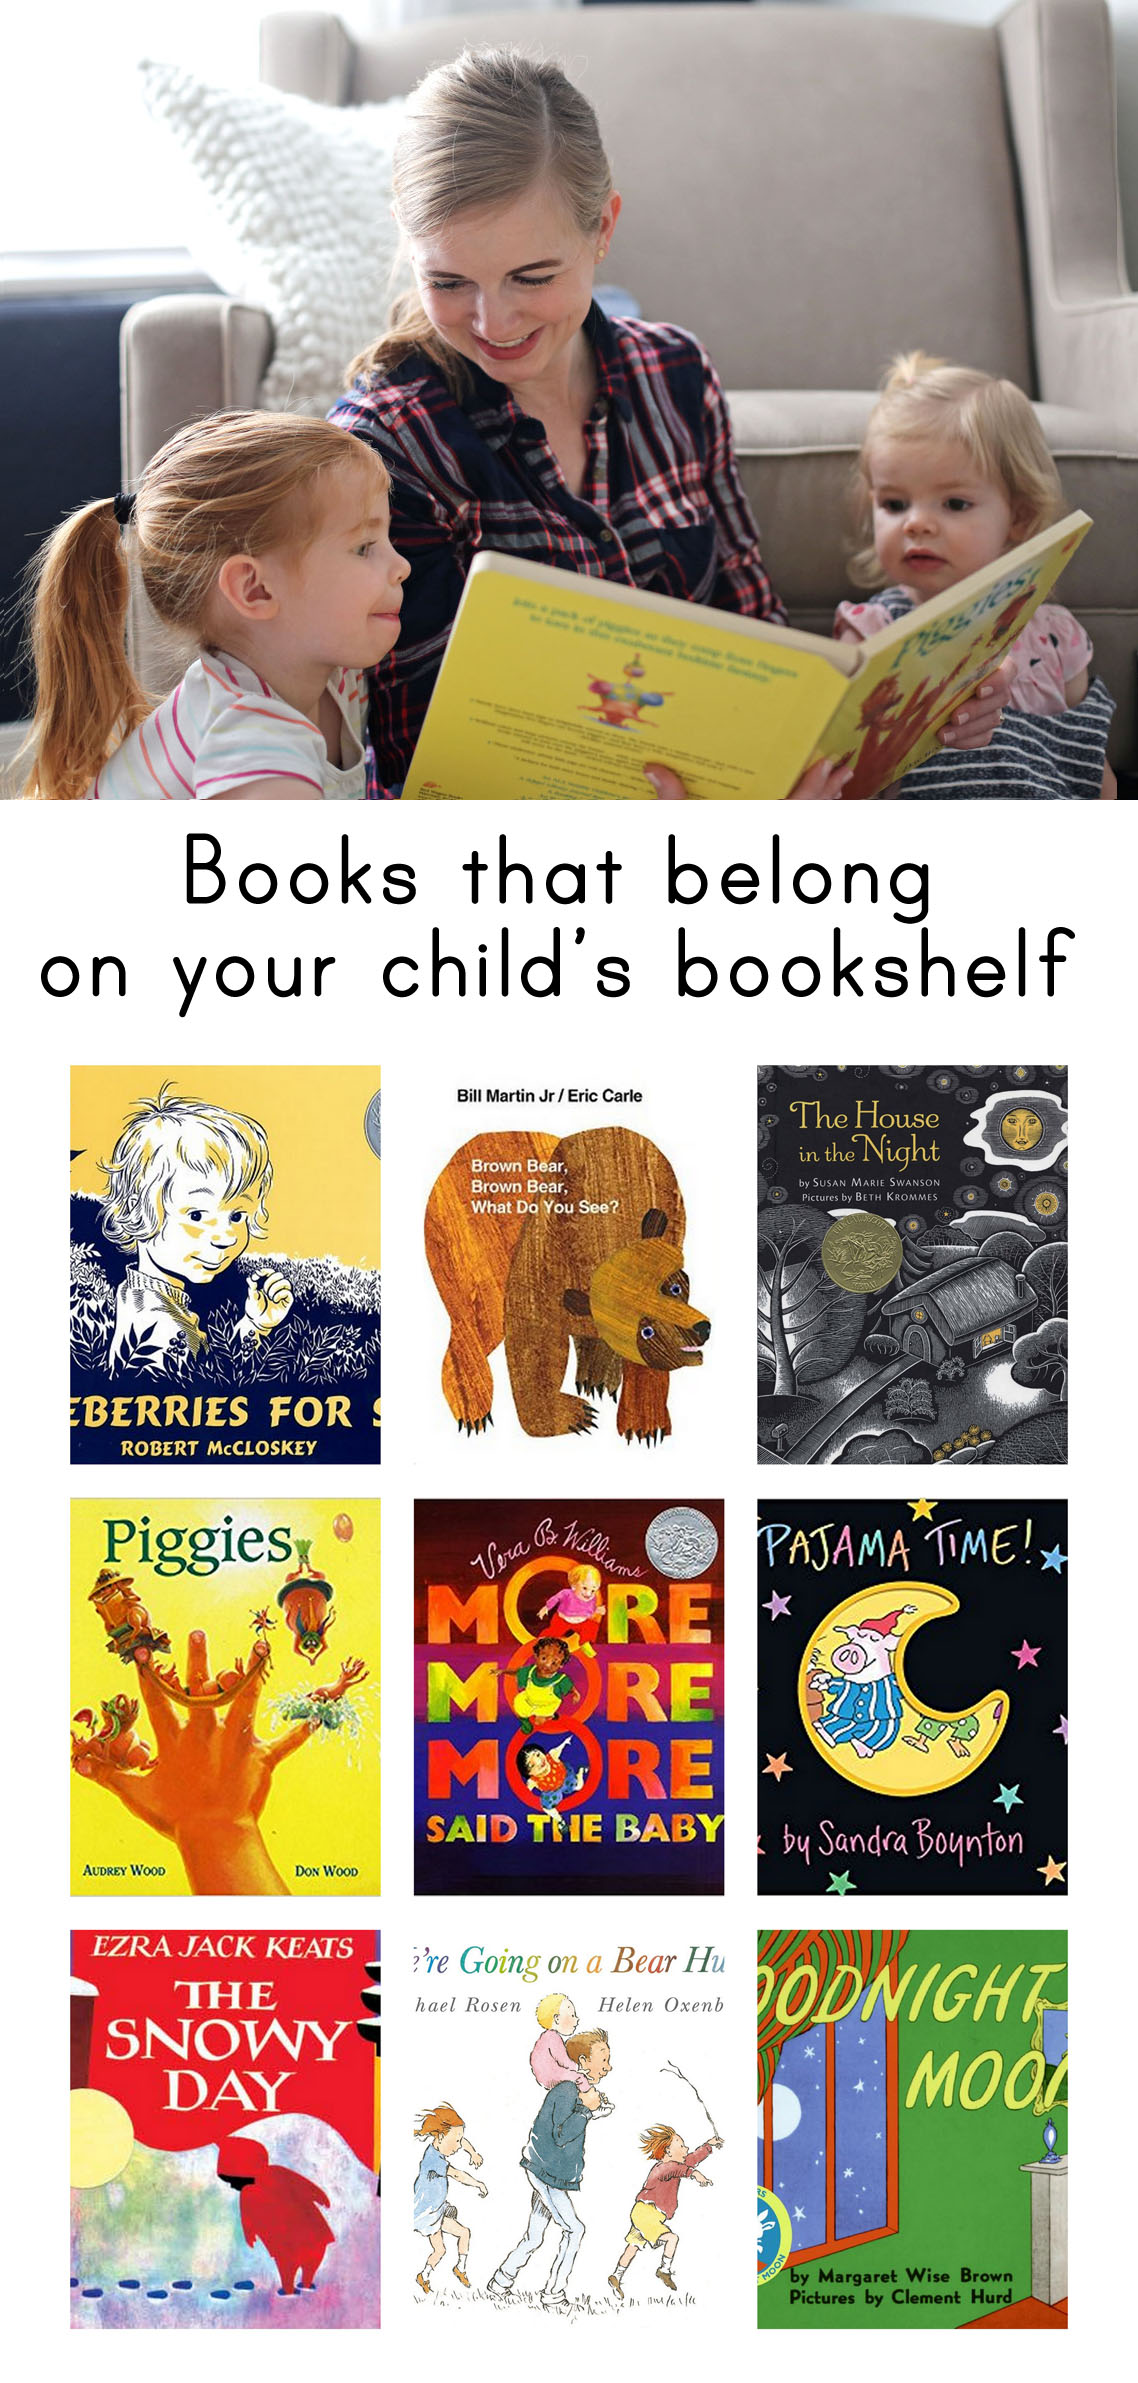 Every child should read these books!